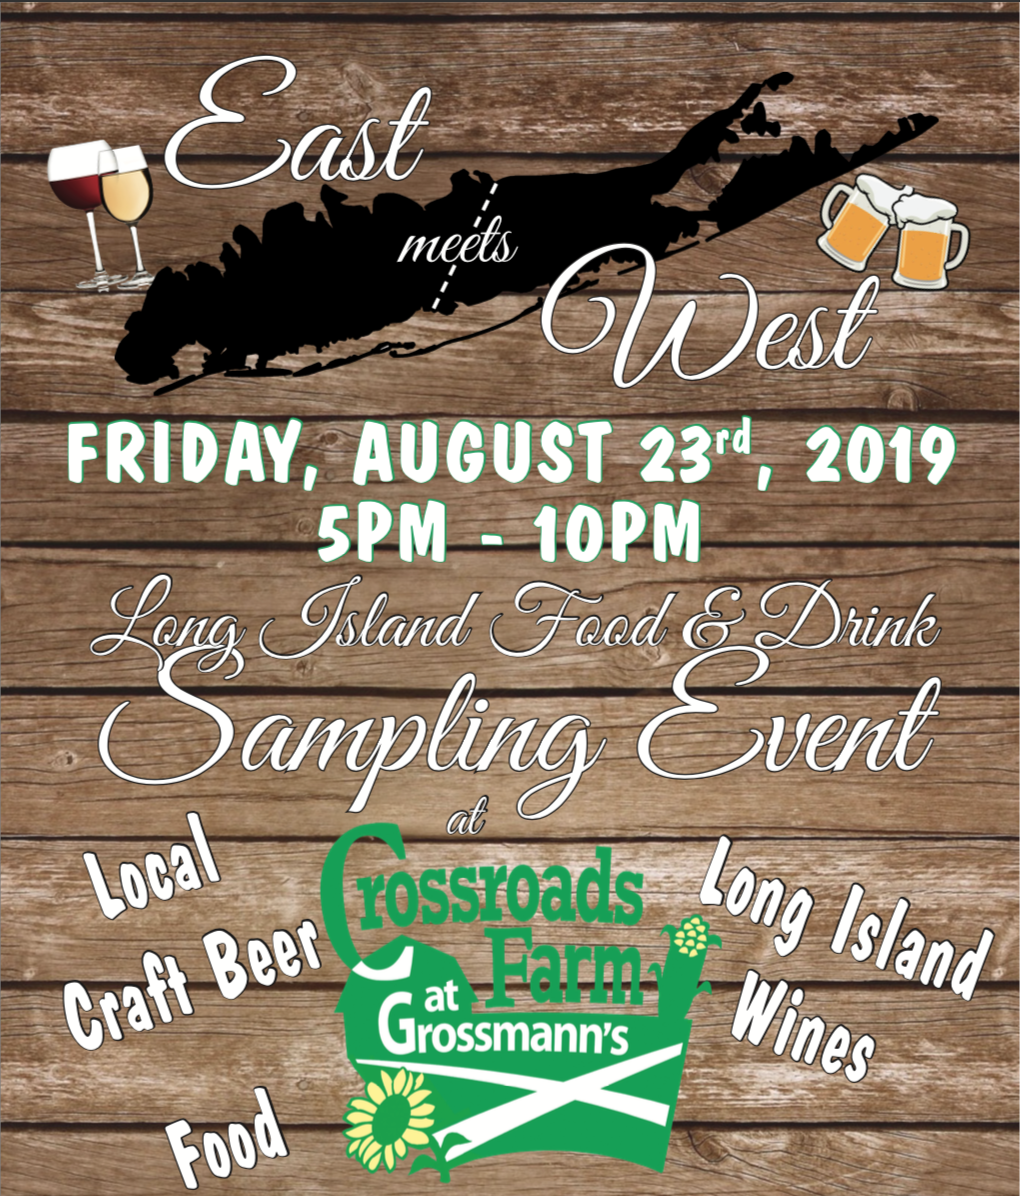 East Meets West Wine Tasting August 23rd 5 - 10